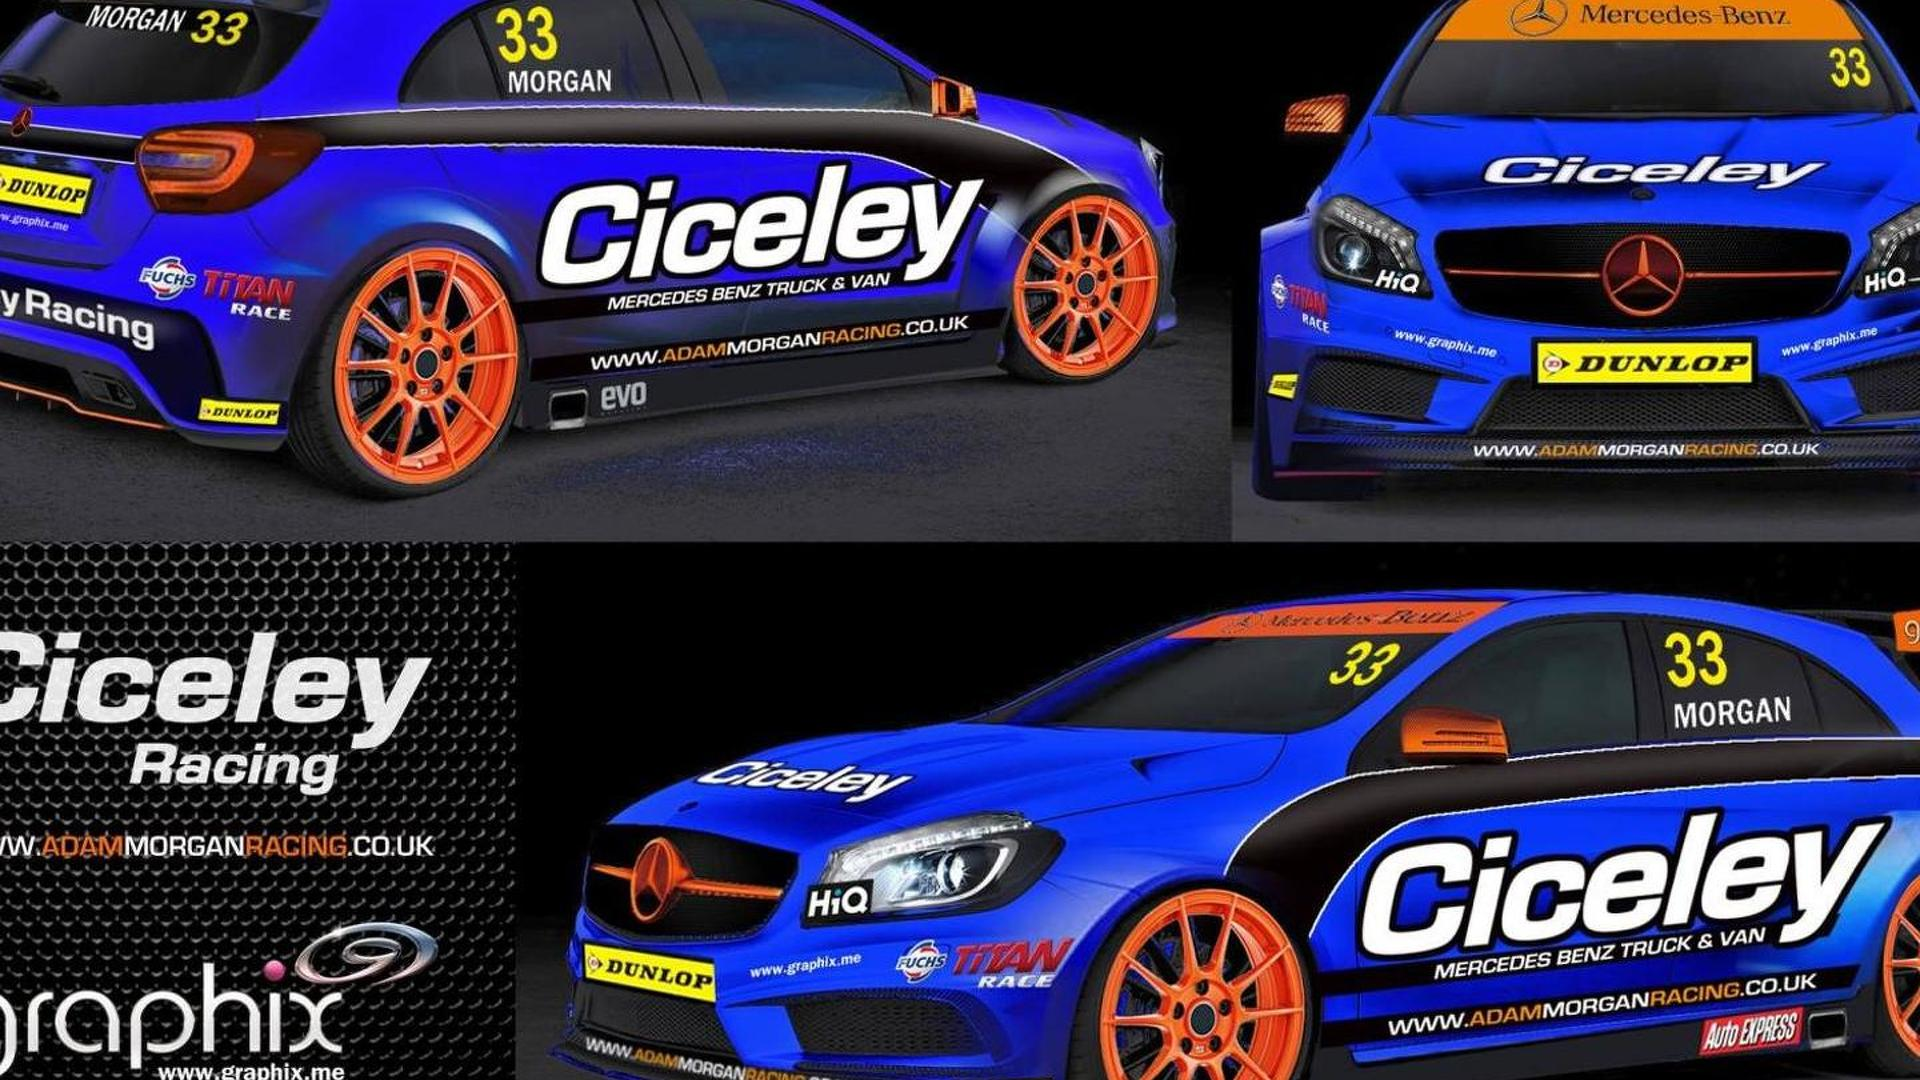 Mercedes A-Class to compete in the BTCC